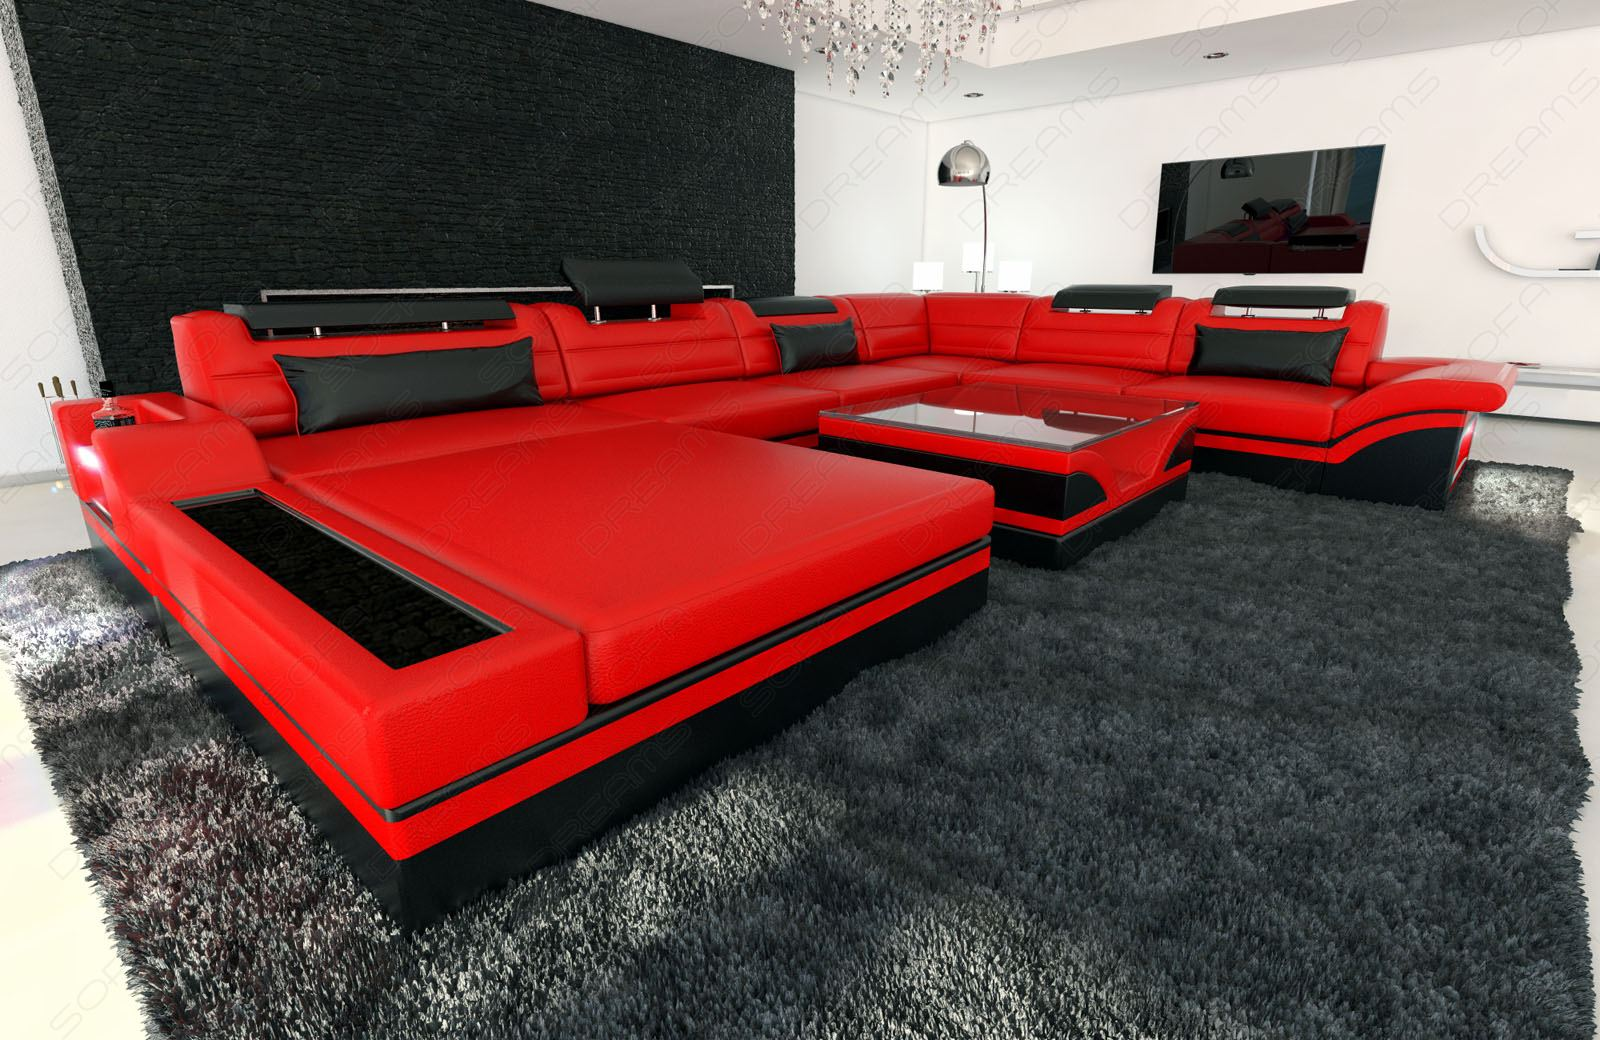 design sectional sofa mezzo xxl with led lights red black. Black Bedroom Furniture Sets. Home Design Ideas